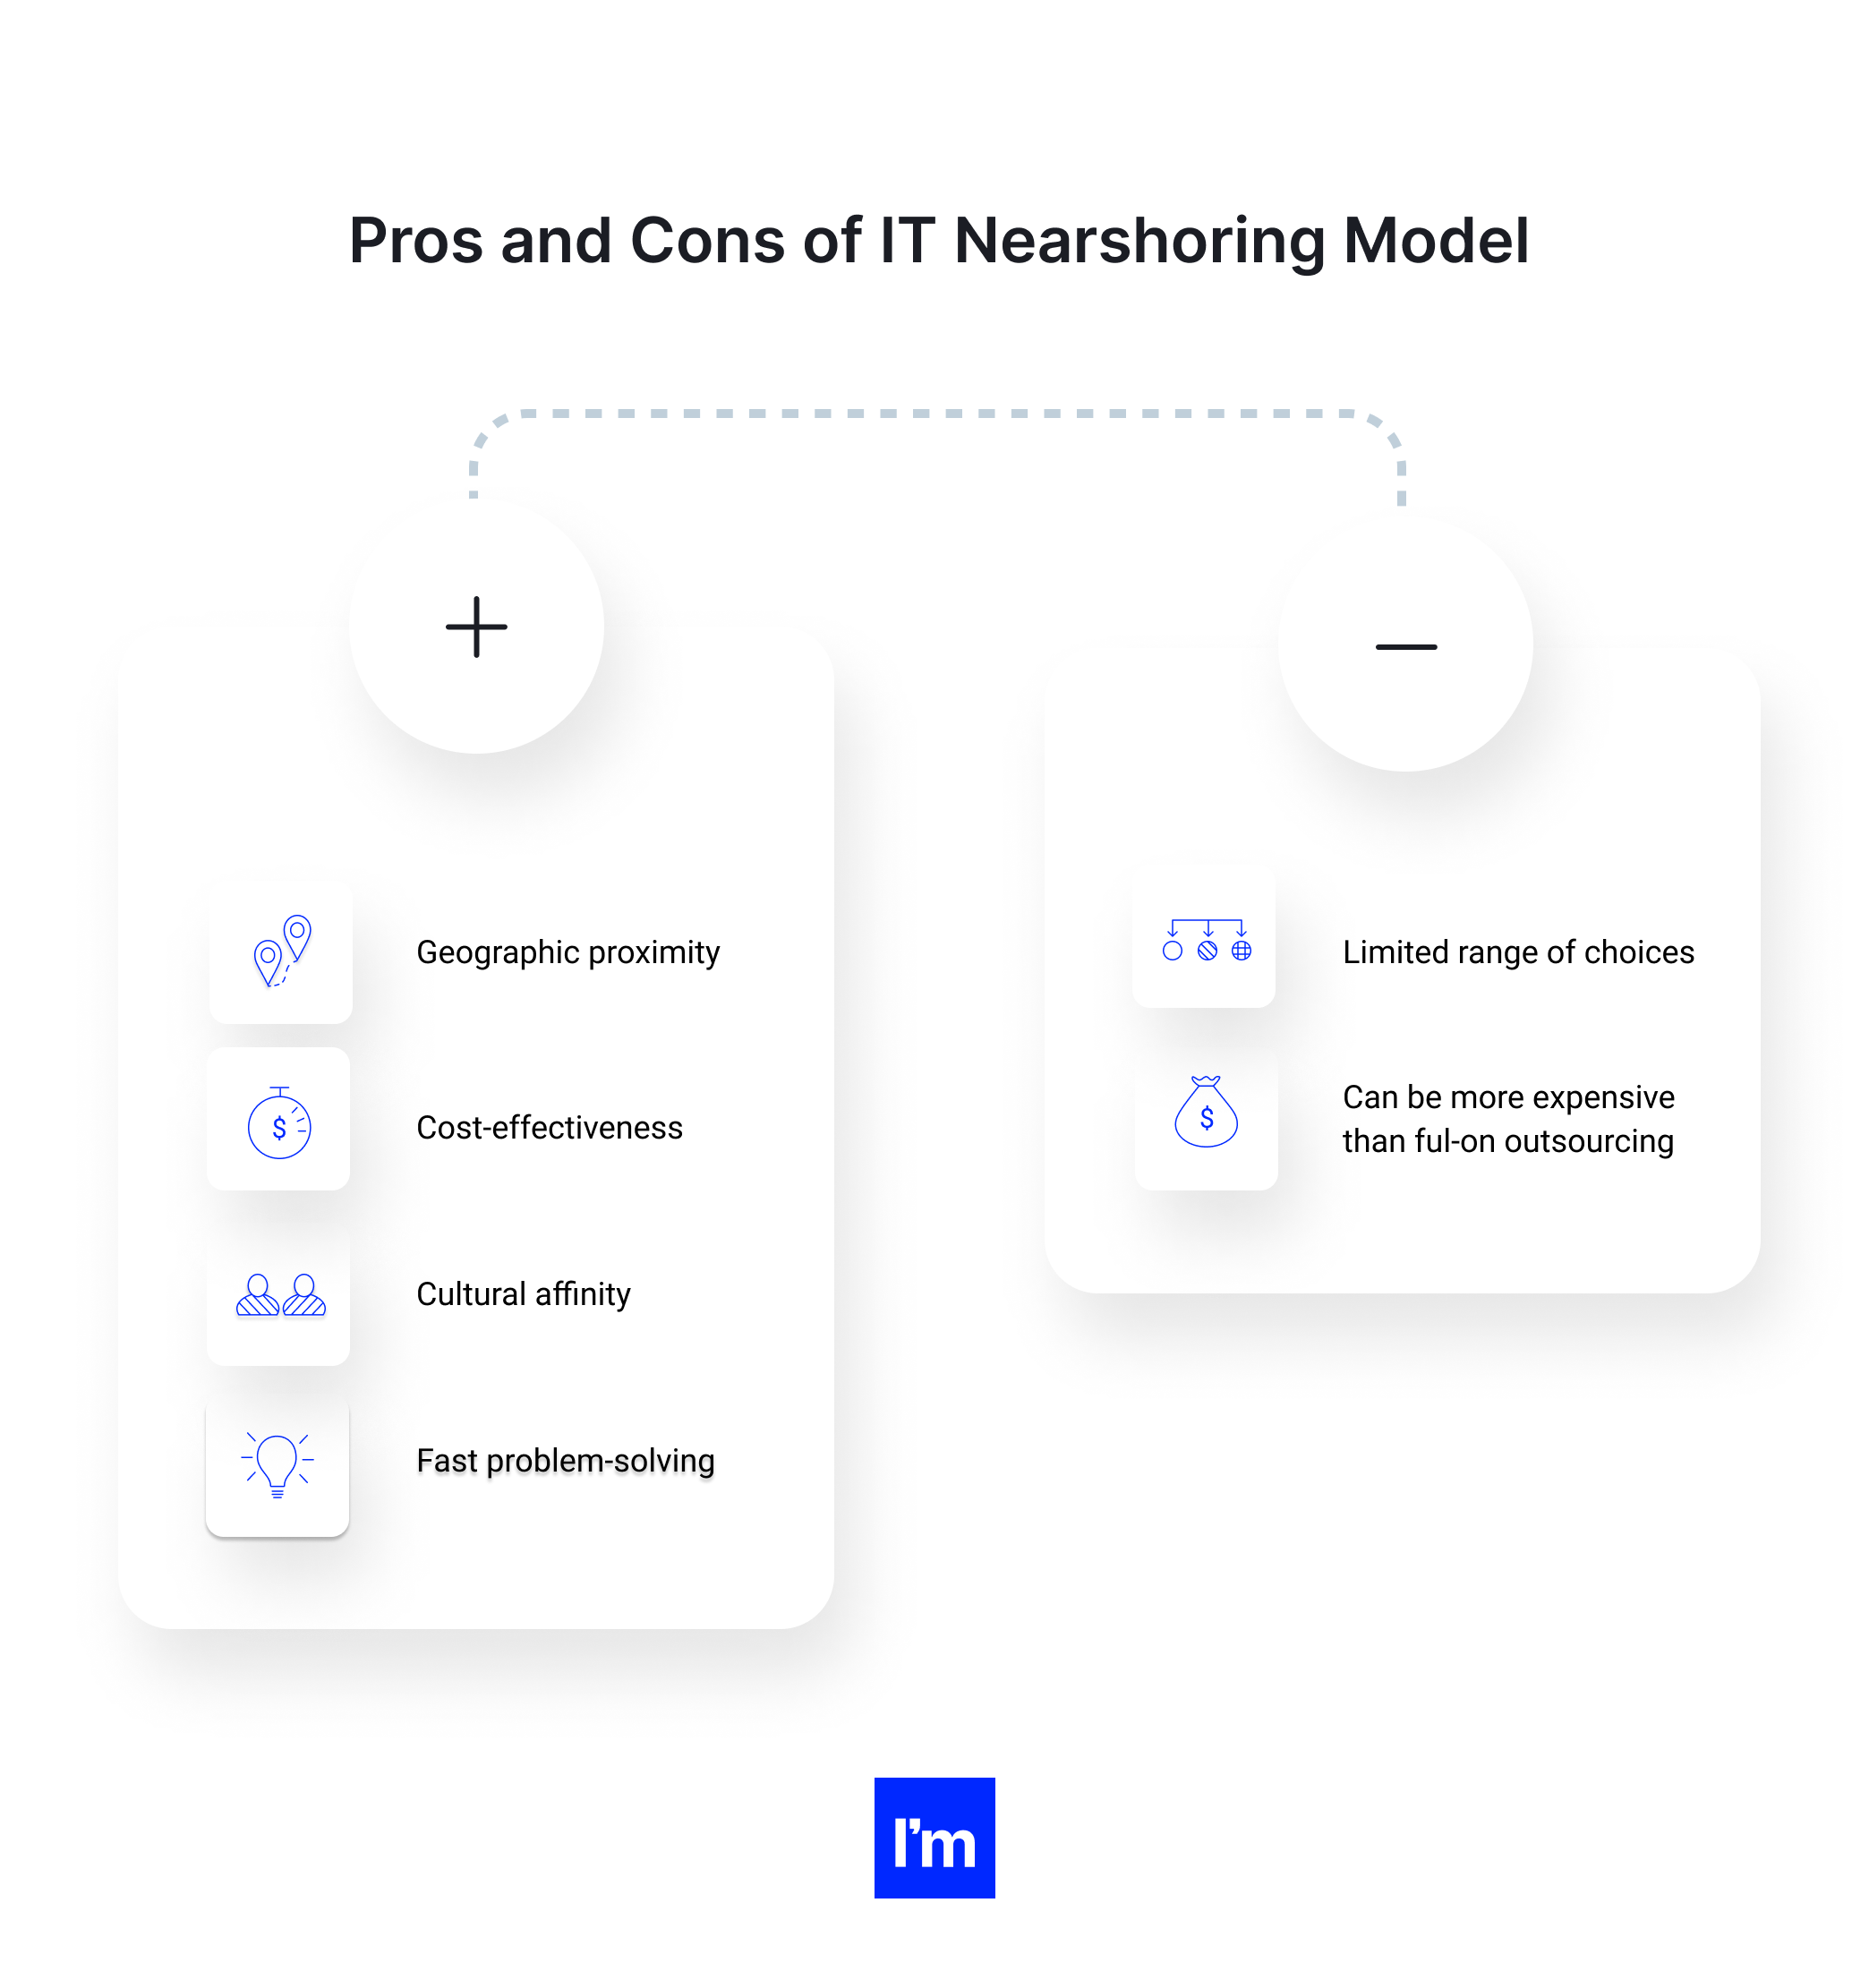 Pros and Cons of IT Nearshoring Model